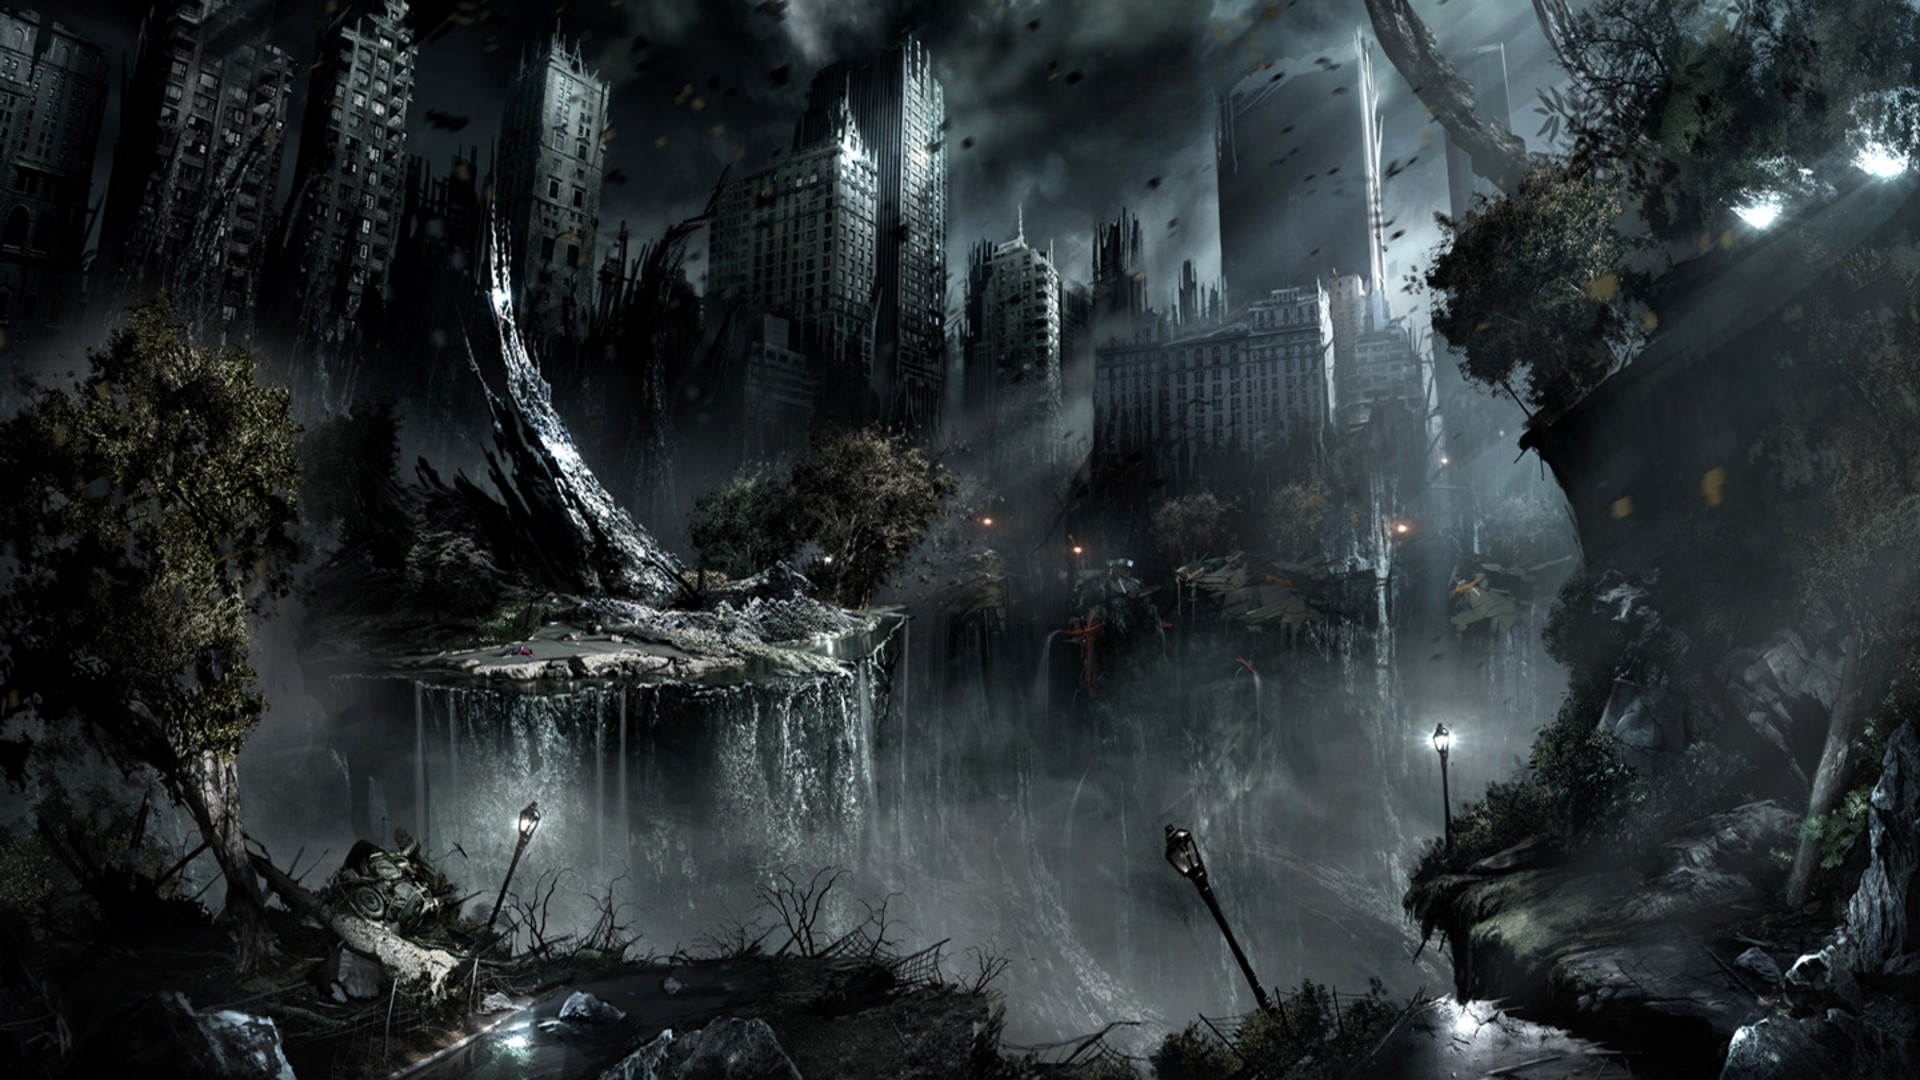 Apocalypse Fantasy Art Science Fiction Cities New Hd Wallpaper 1920x1080